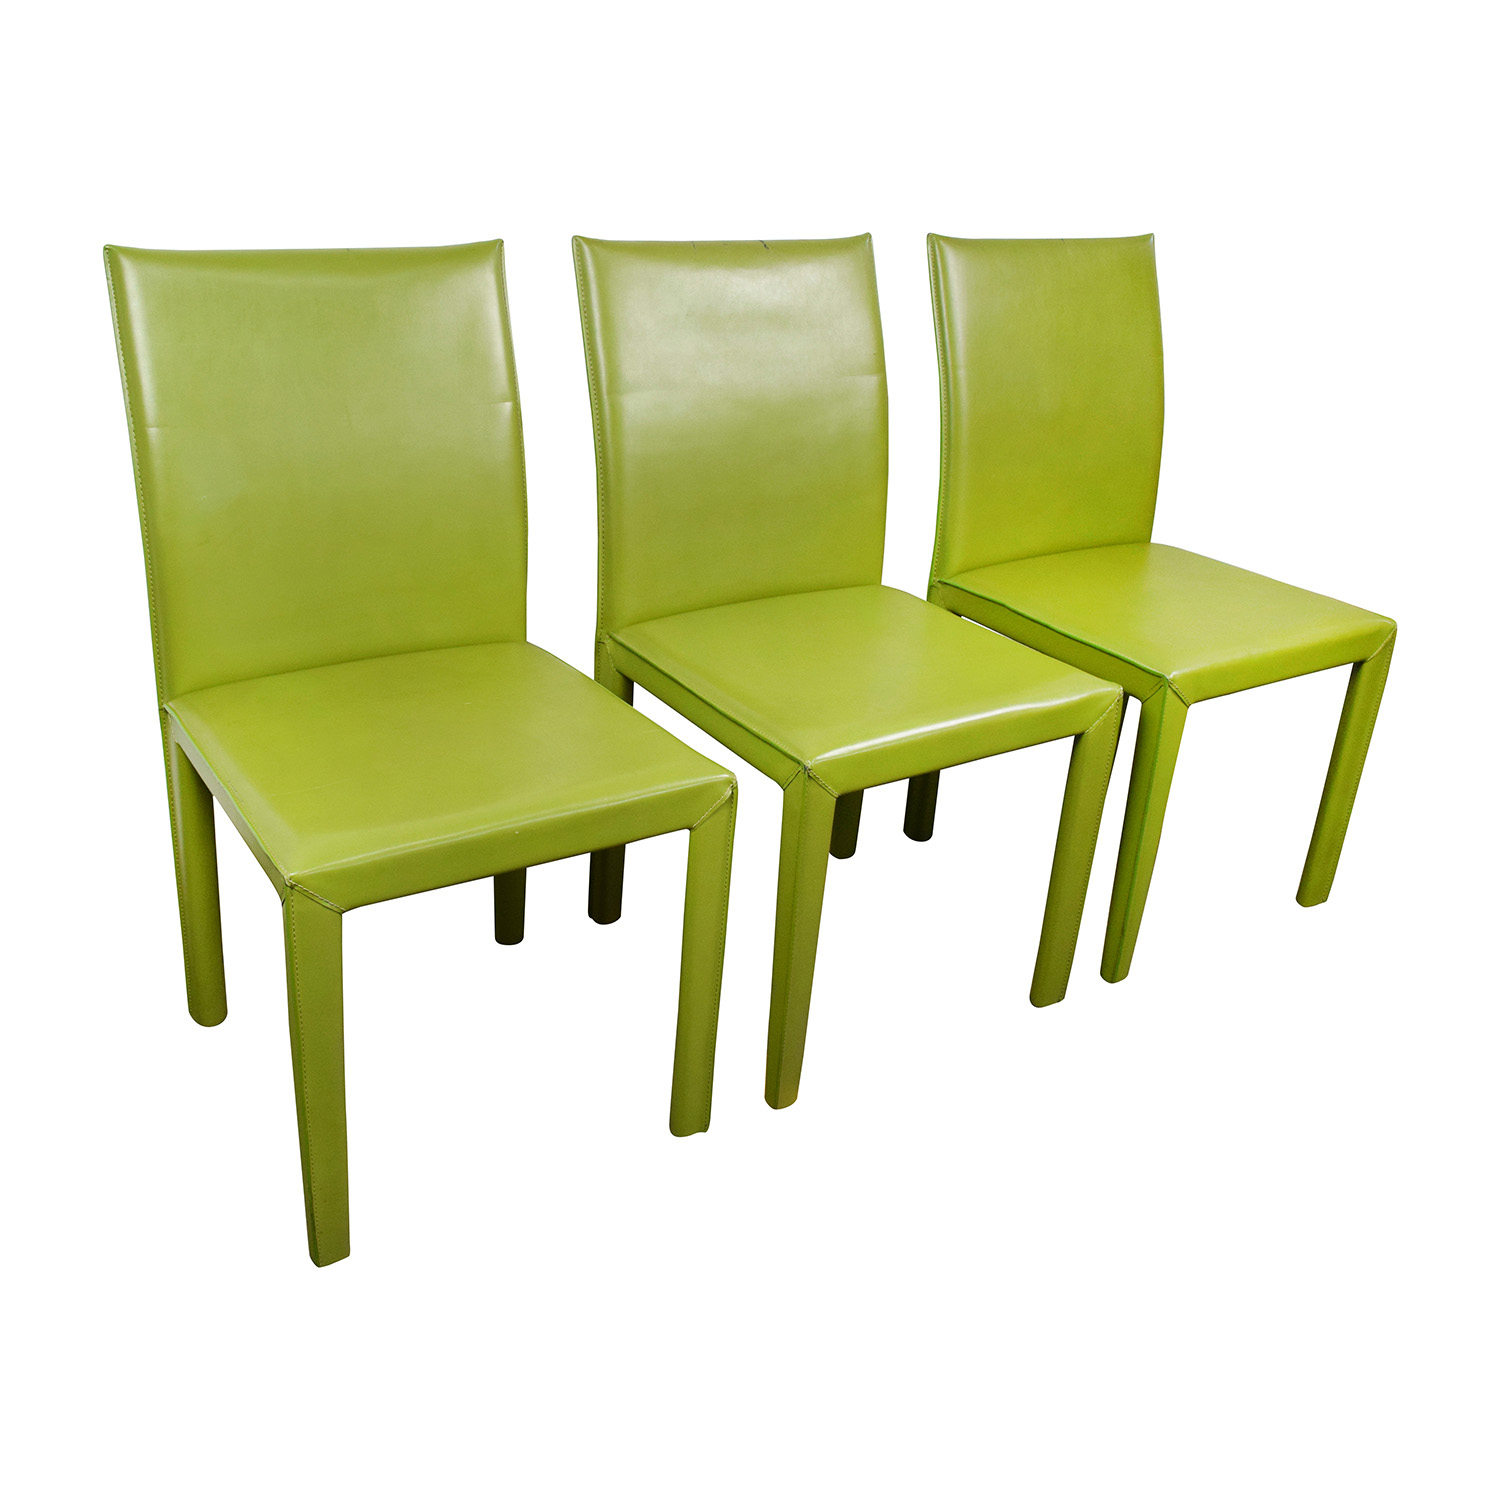 90 Off Wade Logan Wade Logan Meade Lime Green Leather Chairs Chairs